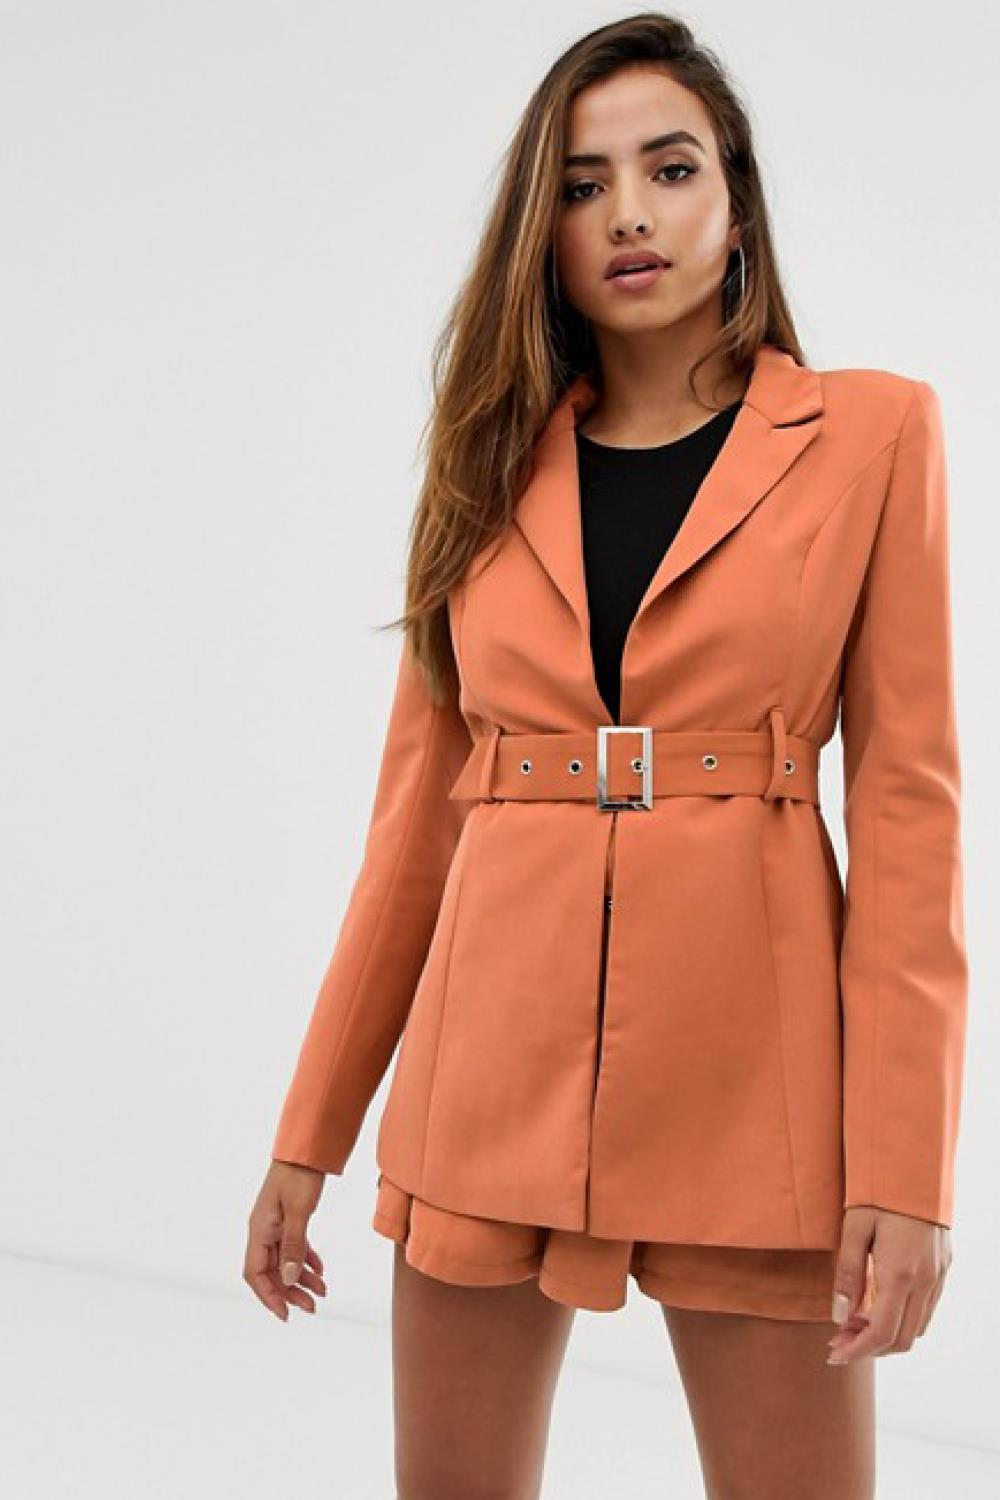 americanas mujer missguided 47,99€